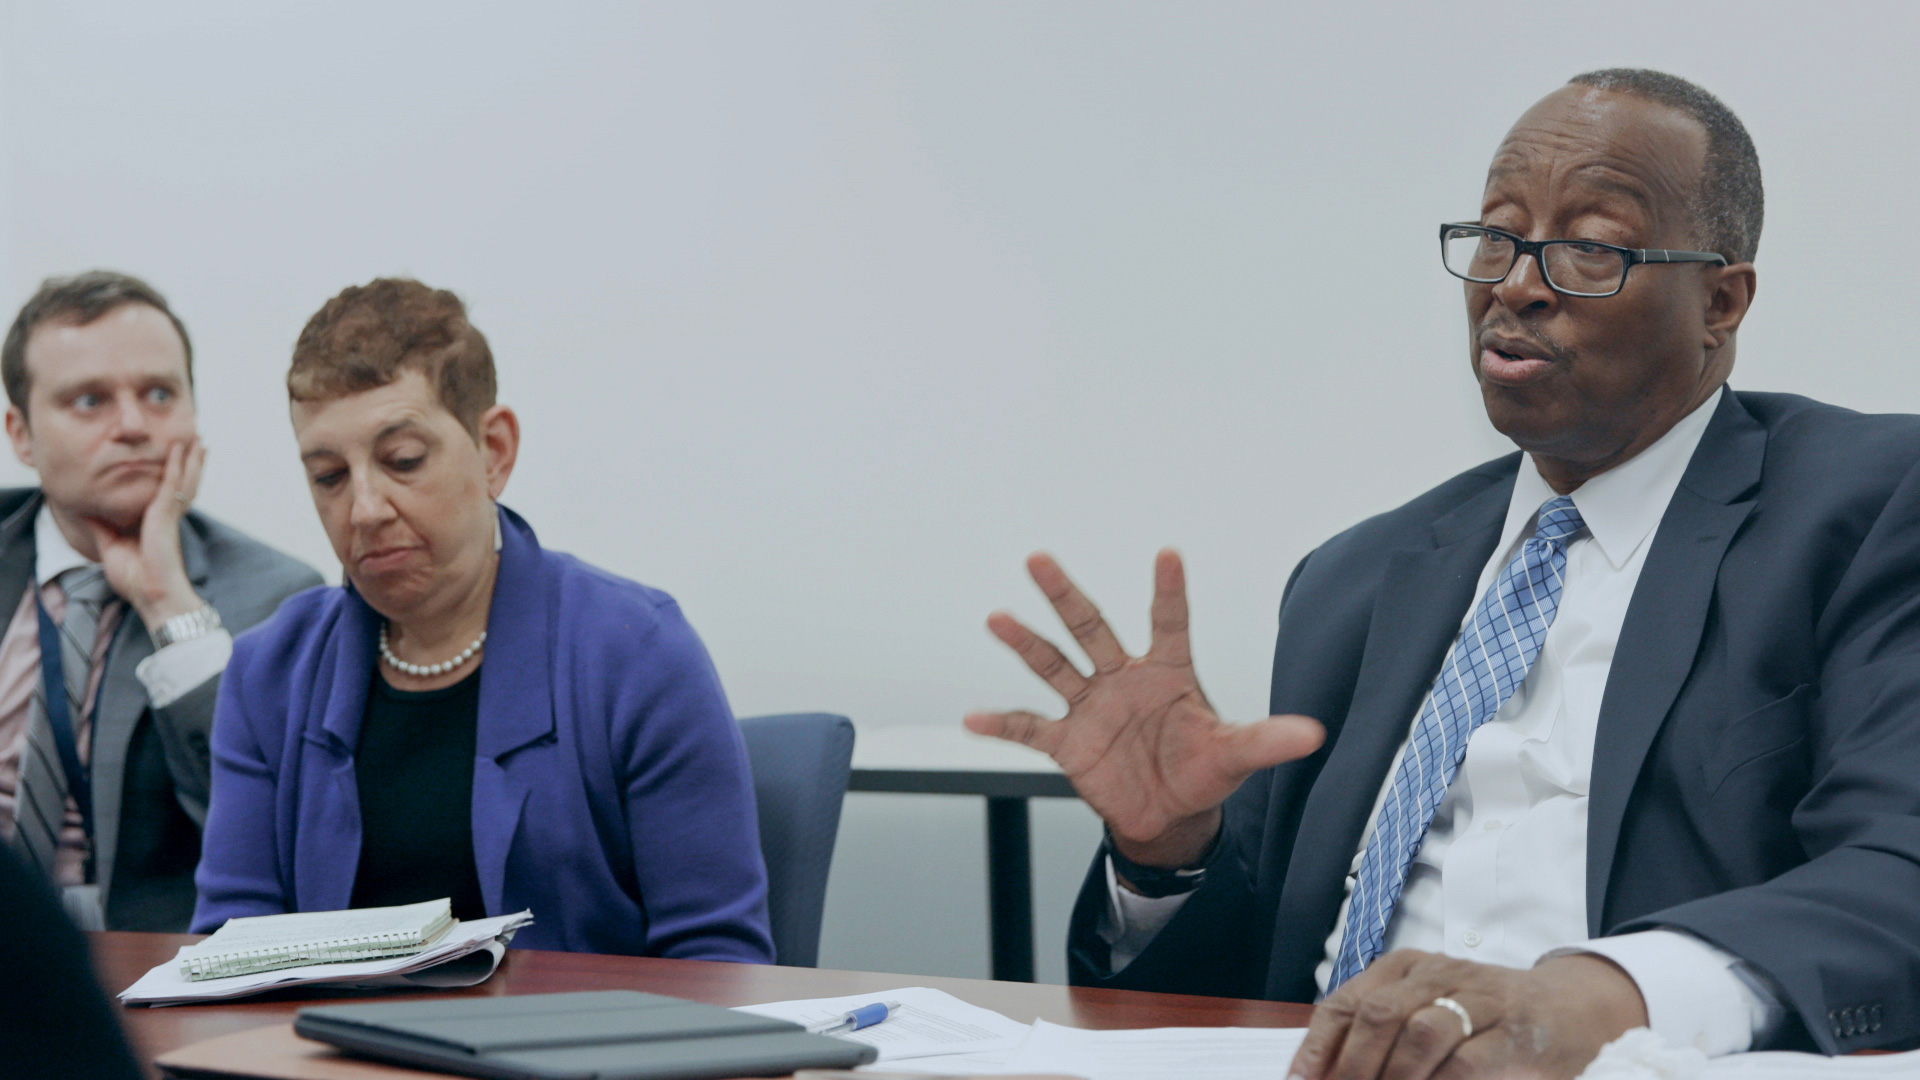 Bob Listenbee during a meeting at DA's office in Philly D.A.